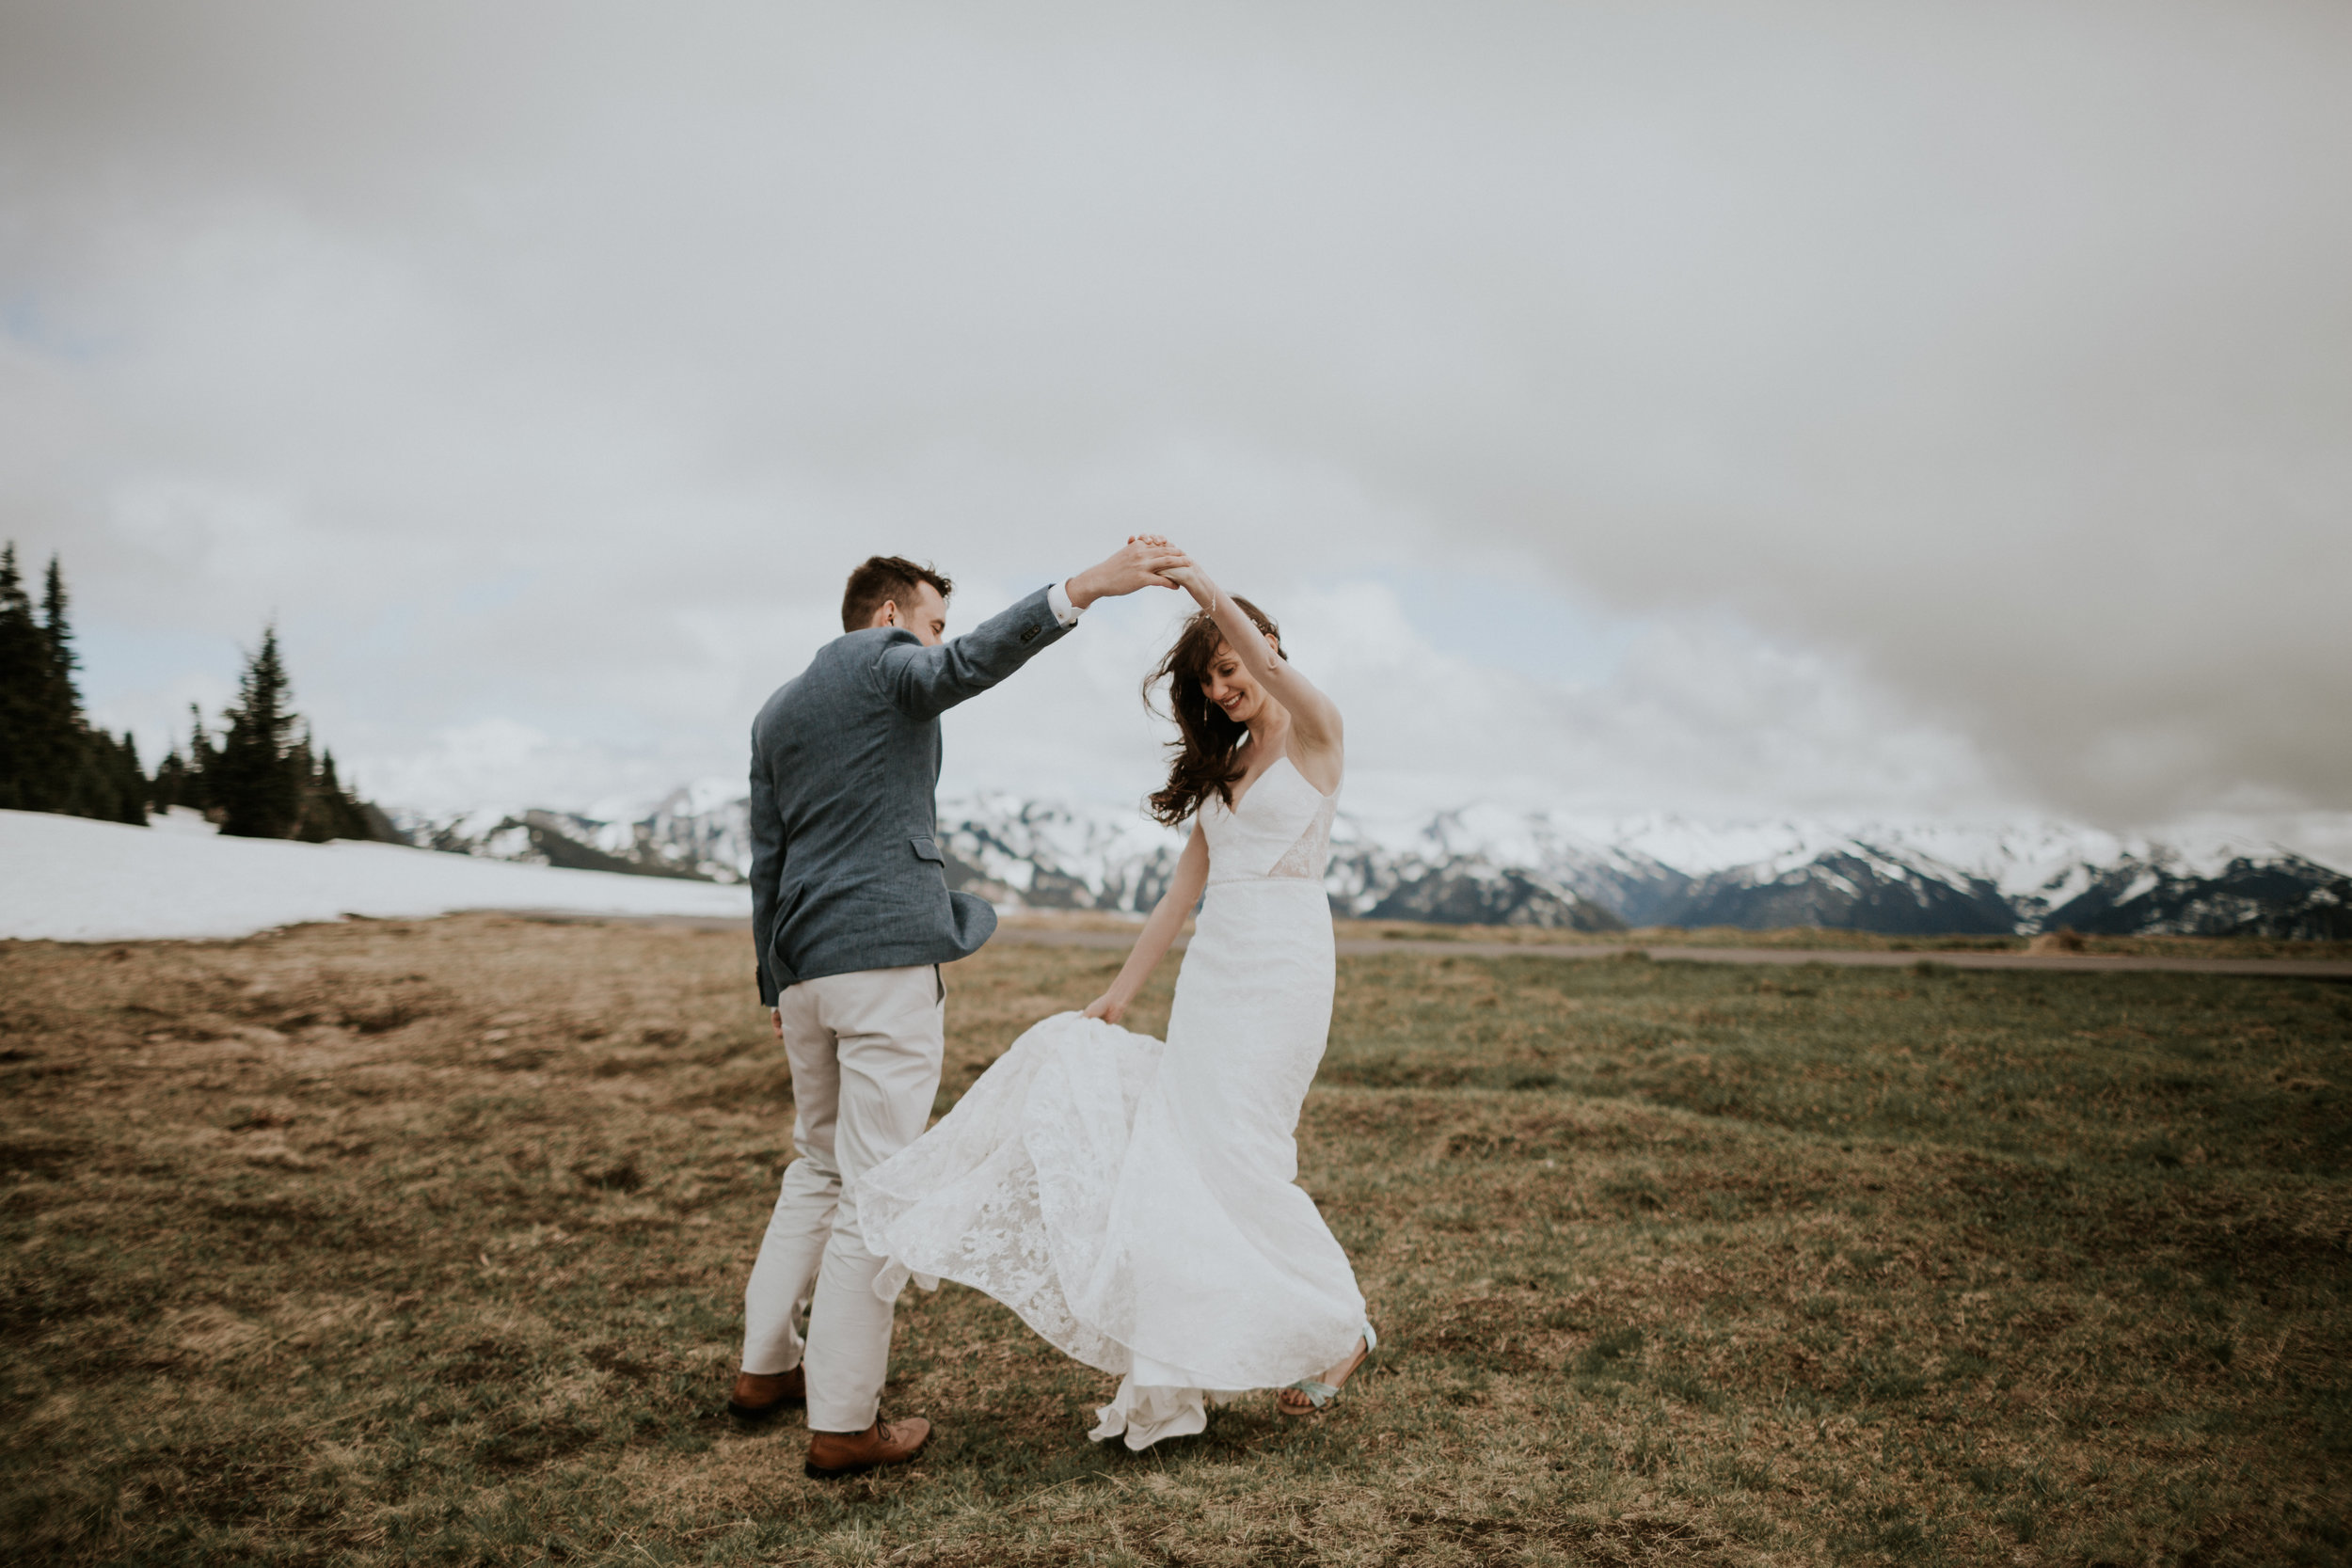 PNW-elopement-wedding-engagement-olympic+national+park-port+angeles-hurricane+ridge-lake+crescent-kayla+dawn+photography-+photographer-photography-kayladawnphoto-186.jpg